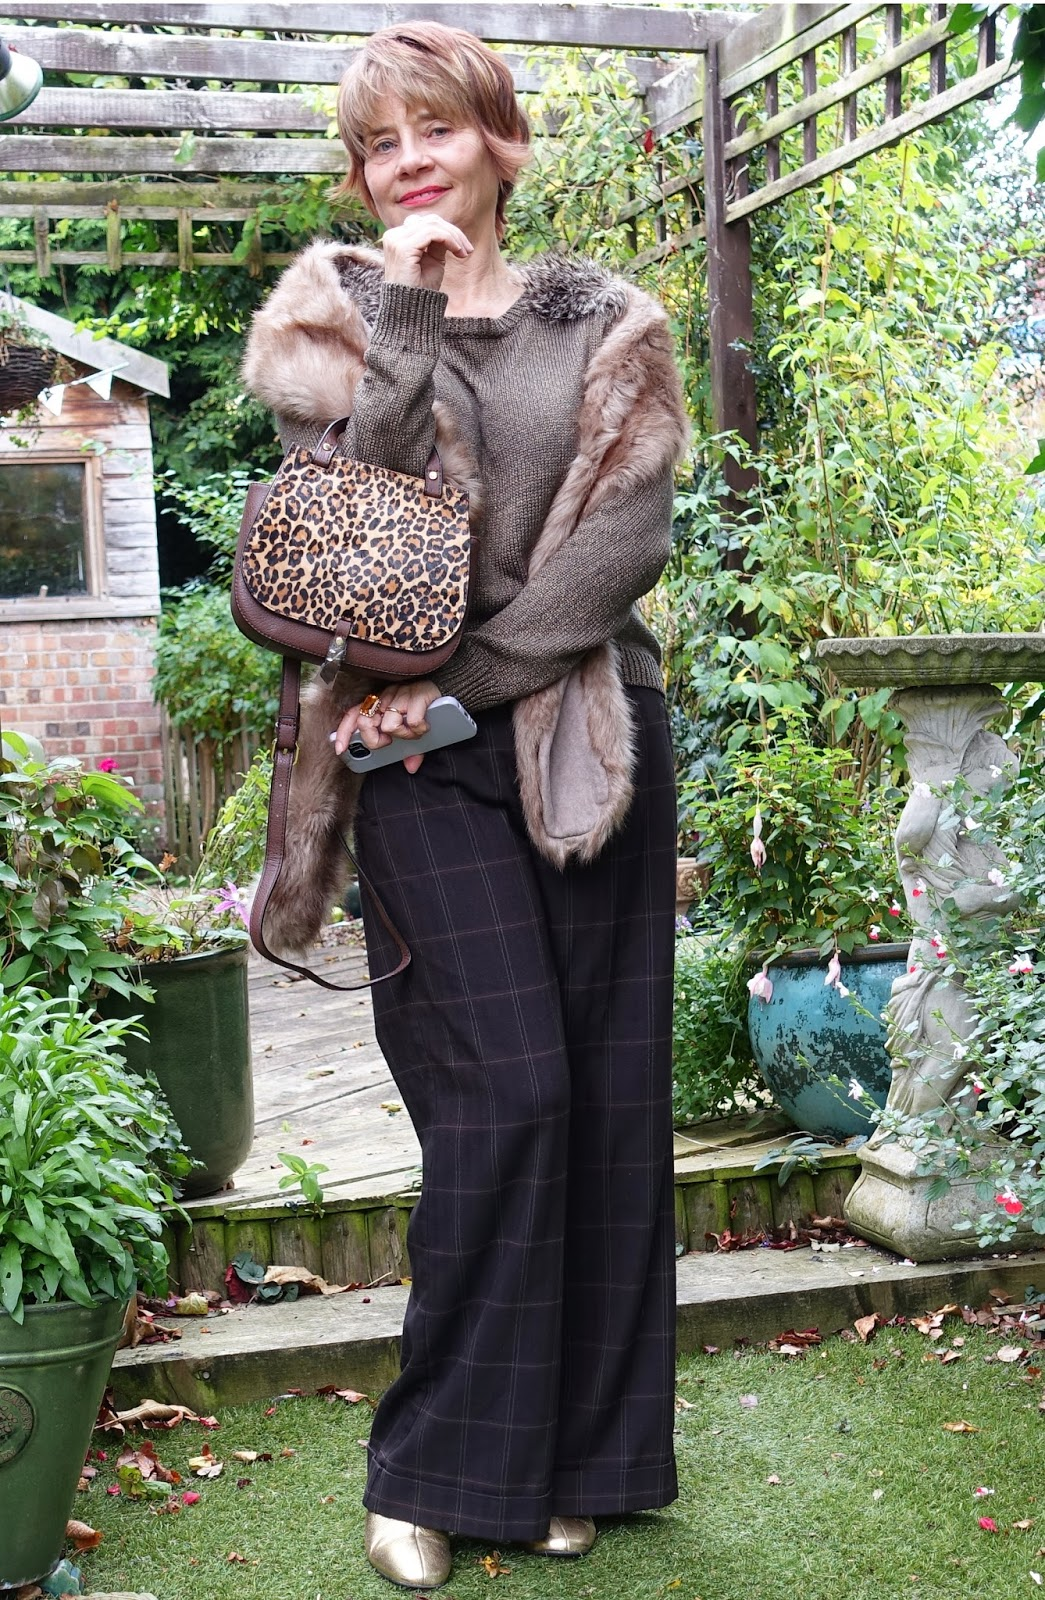 Image showing over-40s blogger Gail Hanlon in old and thrifted clothes in shades of brown and camel